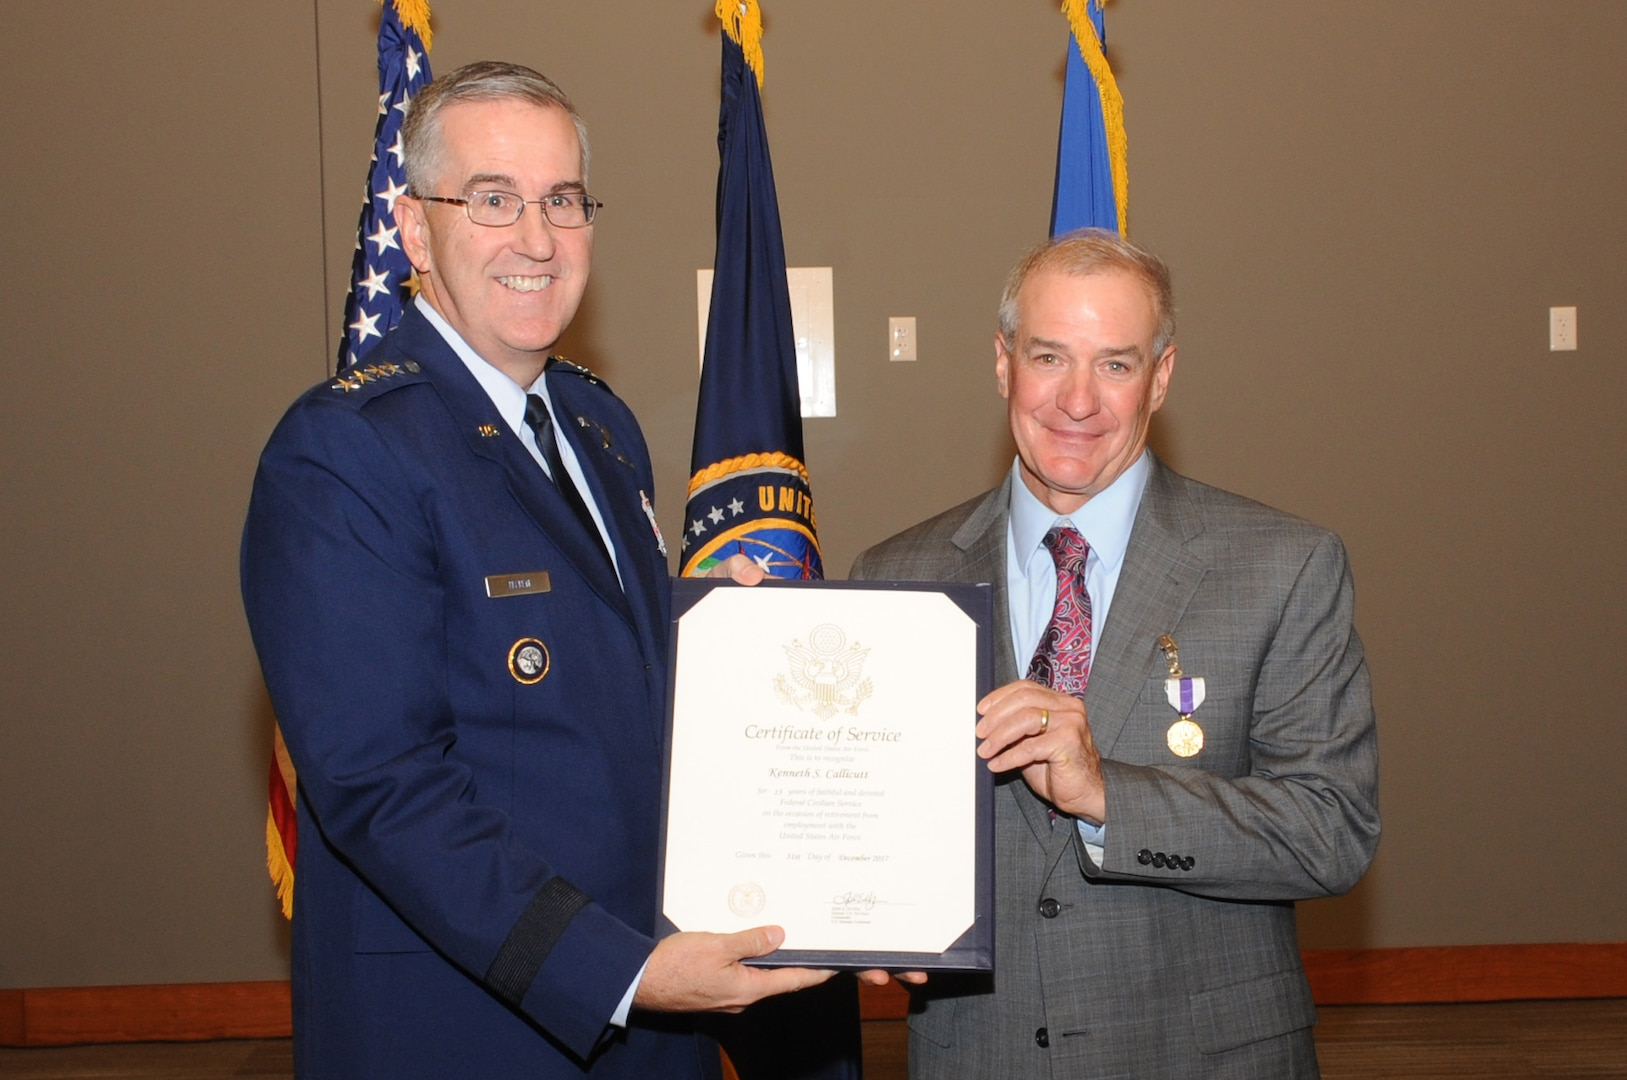 U.S. Air Force Gen. John Hyten, commander of U.S. Strategic Command (USSTRATCOM), presents a certificate of service to Kenneth Callicutt, USSTRATCOM director of capability and resource integration, during his retirement ceremony at Offutt Air Force Base, Neb., Dec. 1, 2017. Callicutt retired after more than 39 years of service as an Air Force officer and member of the Senior Executive Service. During his 12 years with USSTRATCOM, Callicutt led the team responsible for conducting force management and analysis to include integrating, and advocating future concepts, weapons system development, support for emerging technologies, and command and control architecture. One of nine Department of Defense unified combatant commands, USSTRATCOM has global responsibilities assigned through the Unified Command Plan that include strategic deterrence, nuclear operations, space operations, joint electromagnetic spectrum operations, global strike, missile defense, and analysis and targeting.